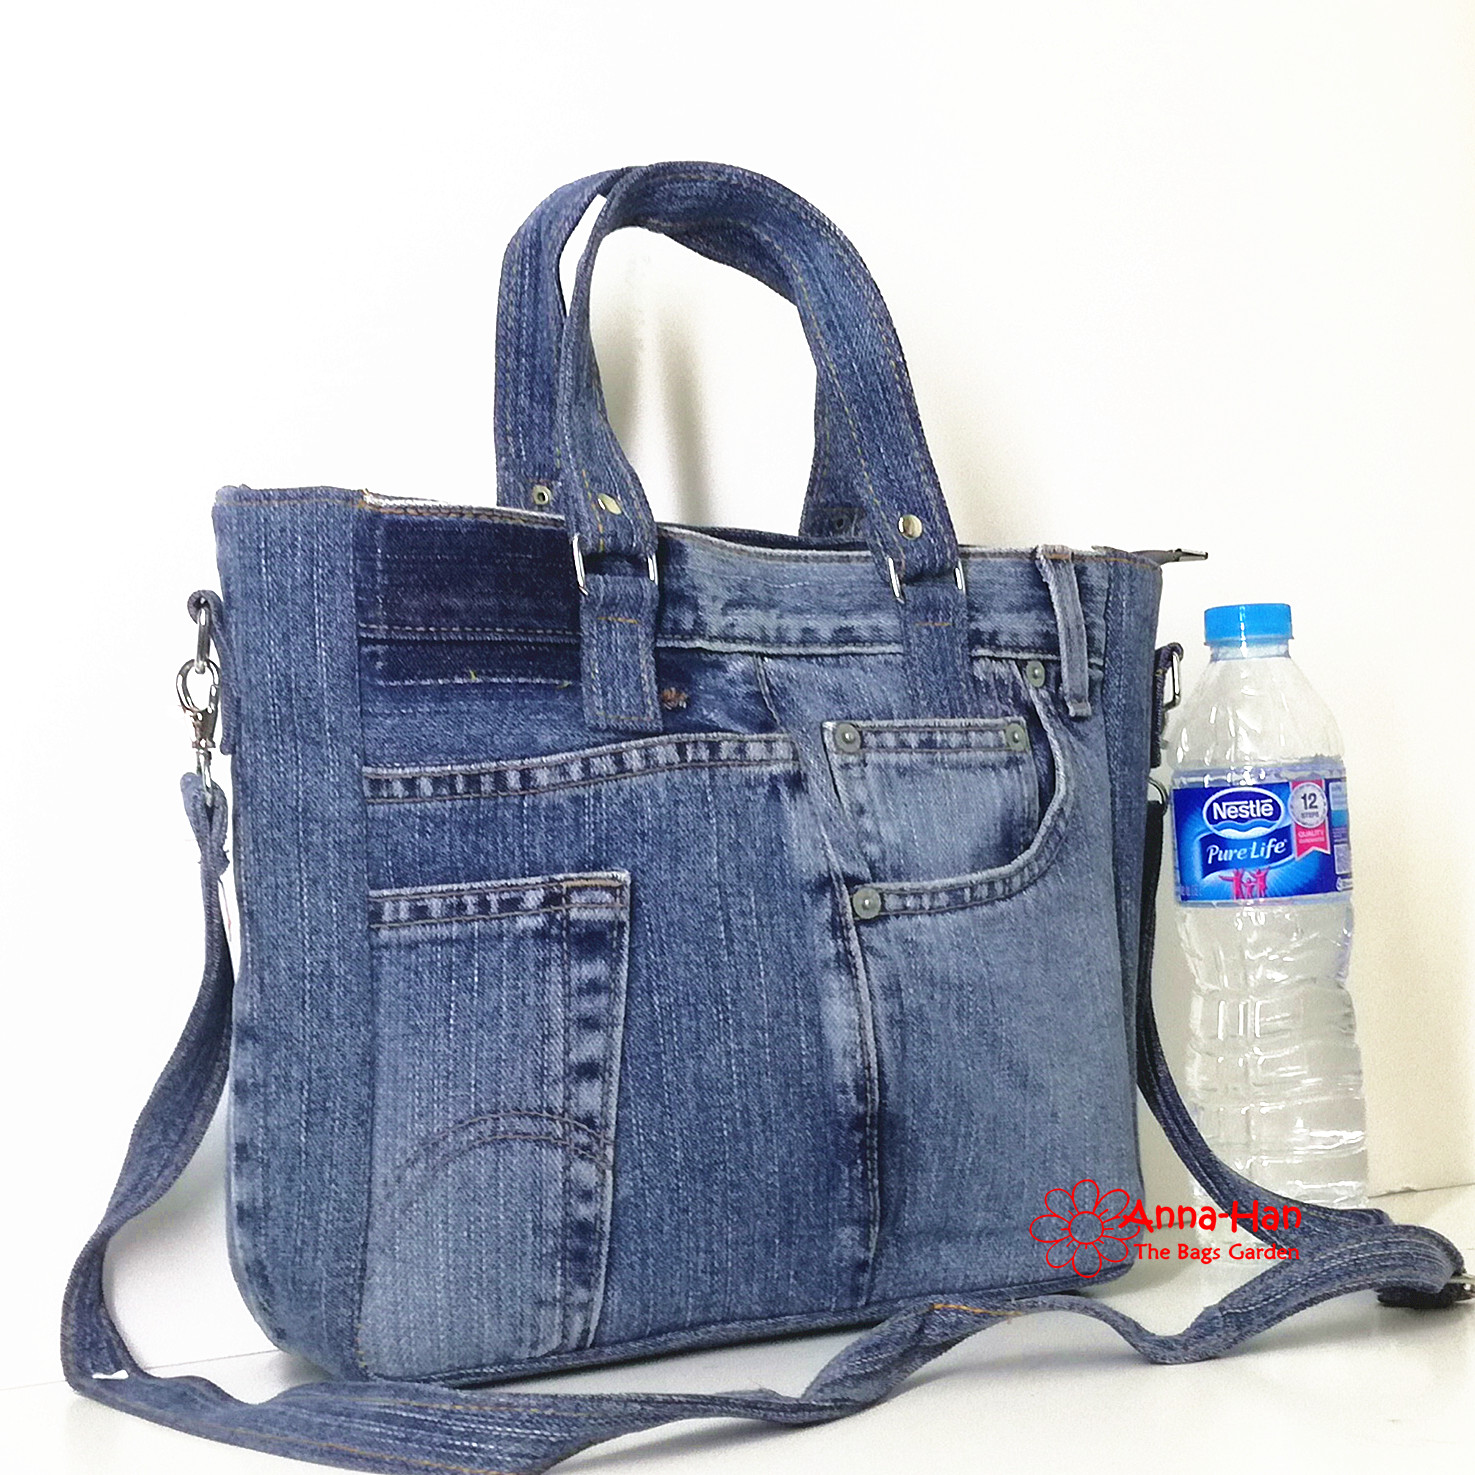 Jb12 Alpinia Jean Work Bag